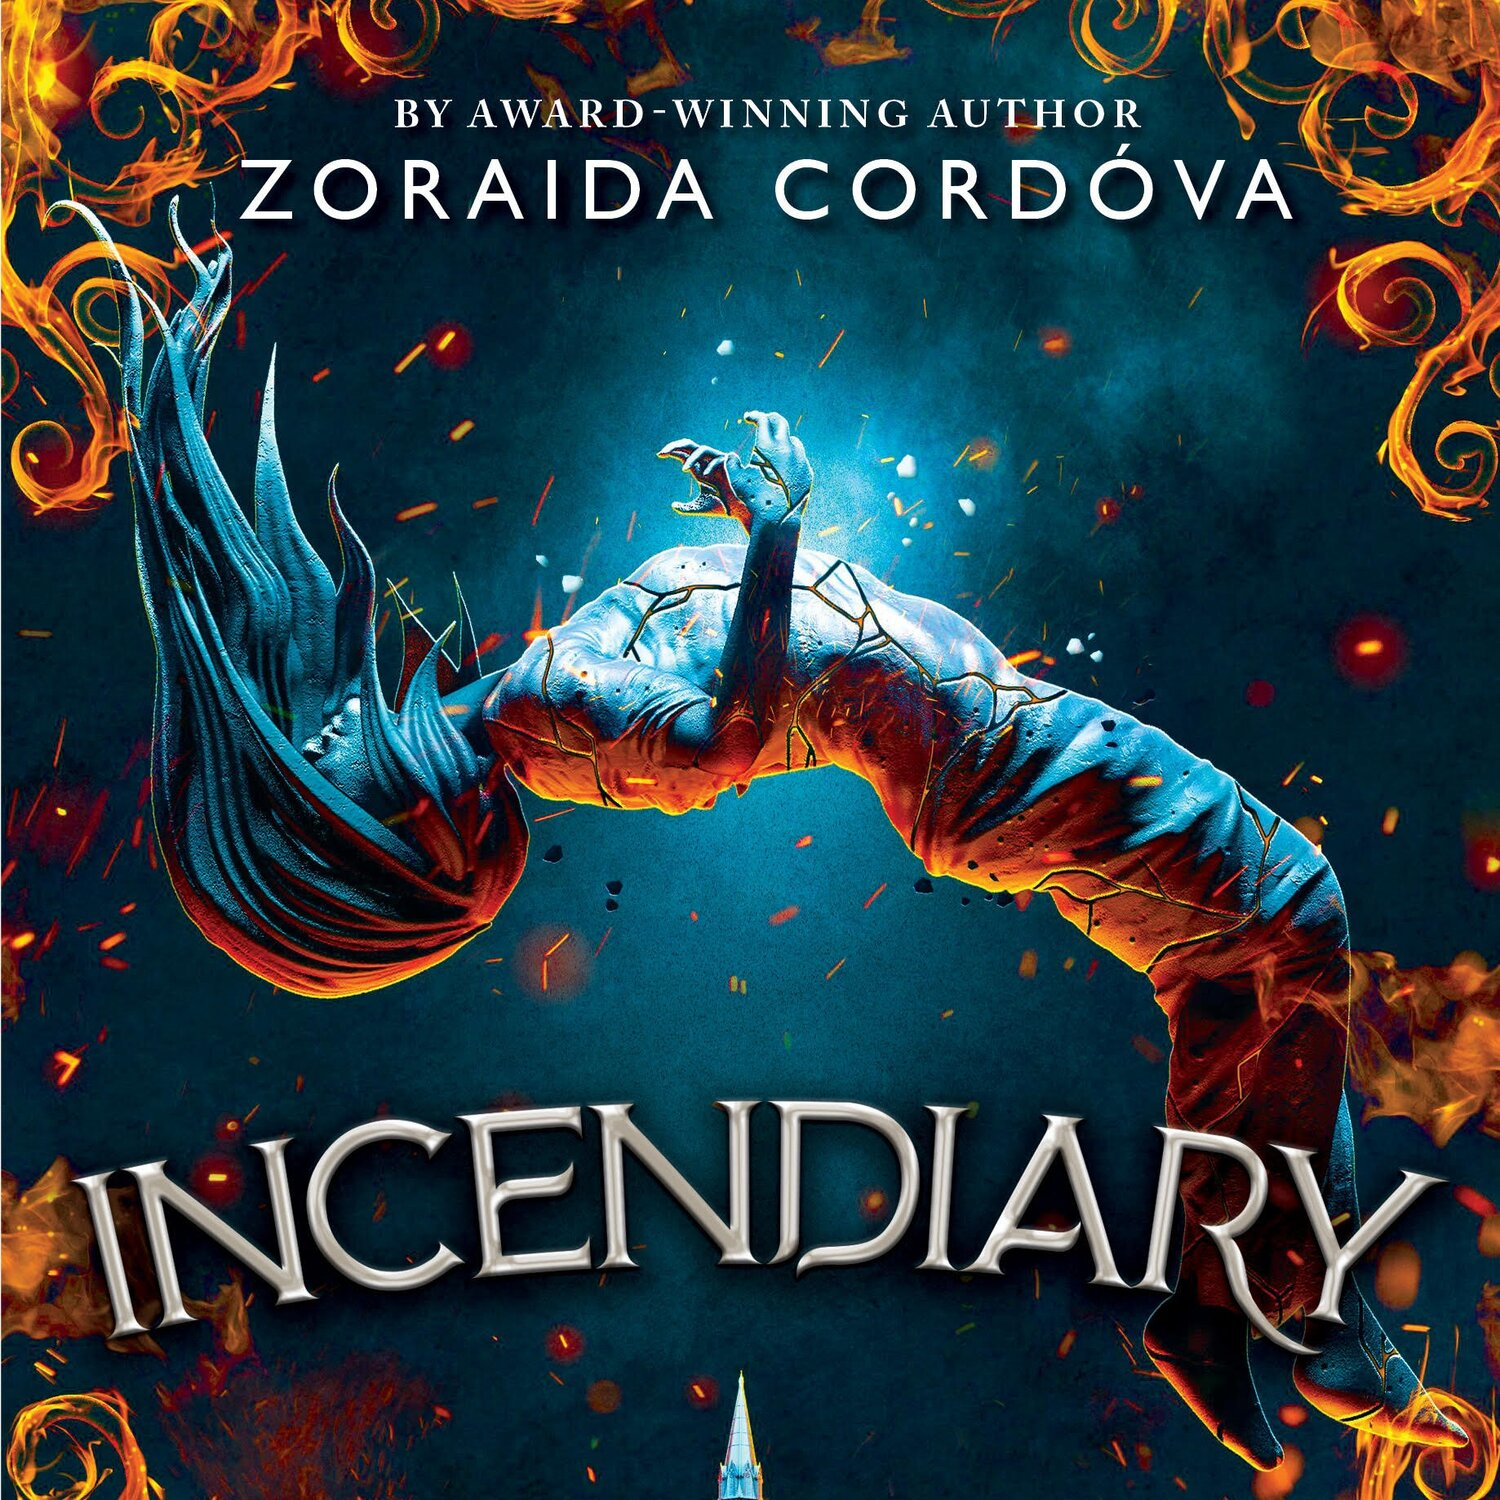 INCENDIARY COVER REVEAL AND EXCERPT     Incendiary  is an epic Spanish Inquisition-set fantasy by Zoraida Córdova. It centers on Renata Convida, whose magical abilities to steal memories wrought the wrath of the King and took thousands of lives with it.   Read more »